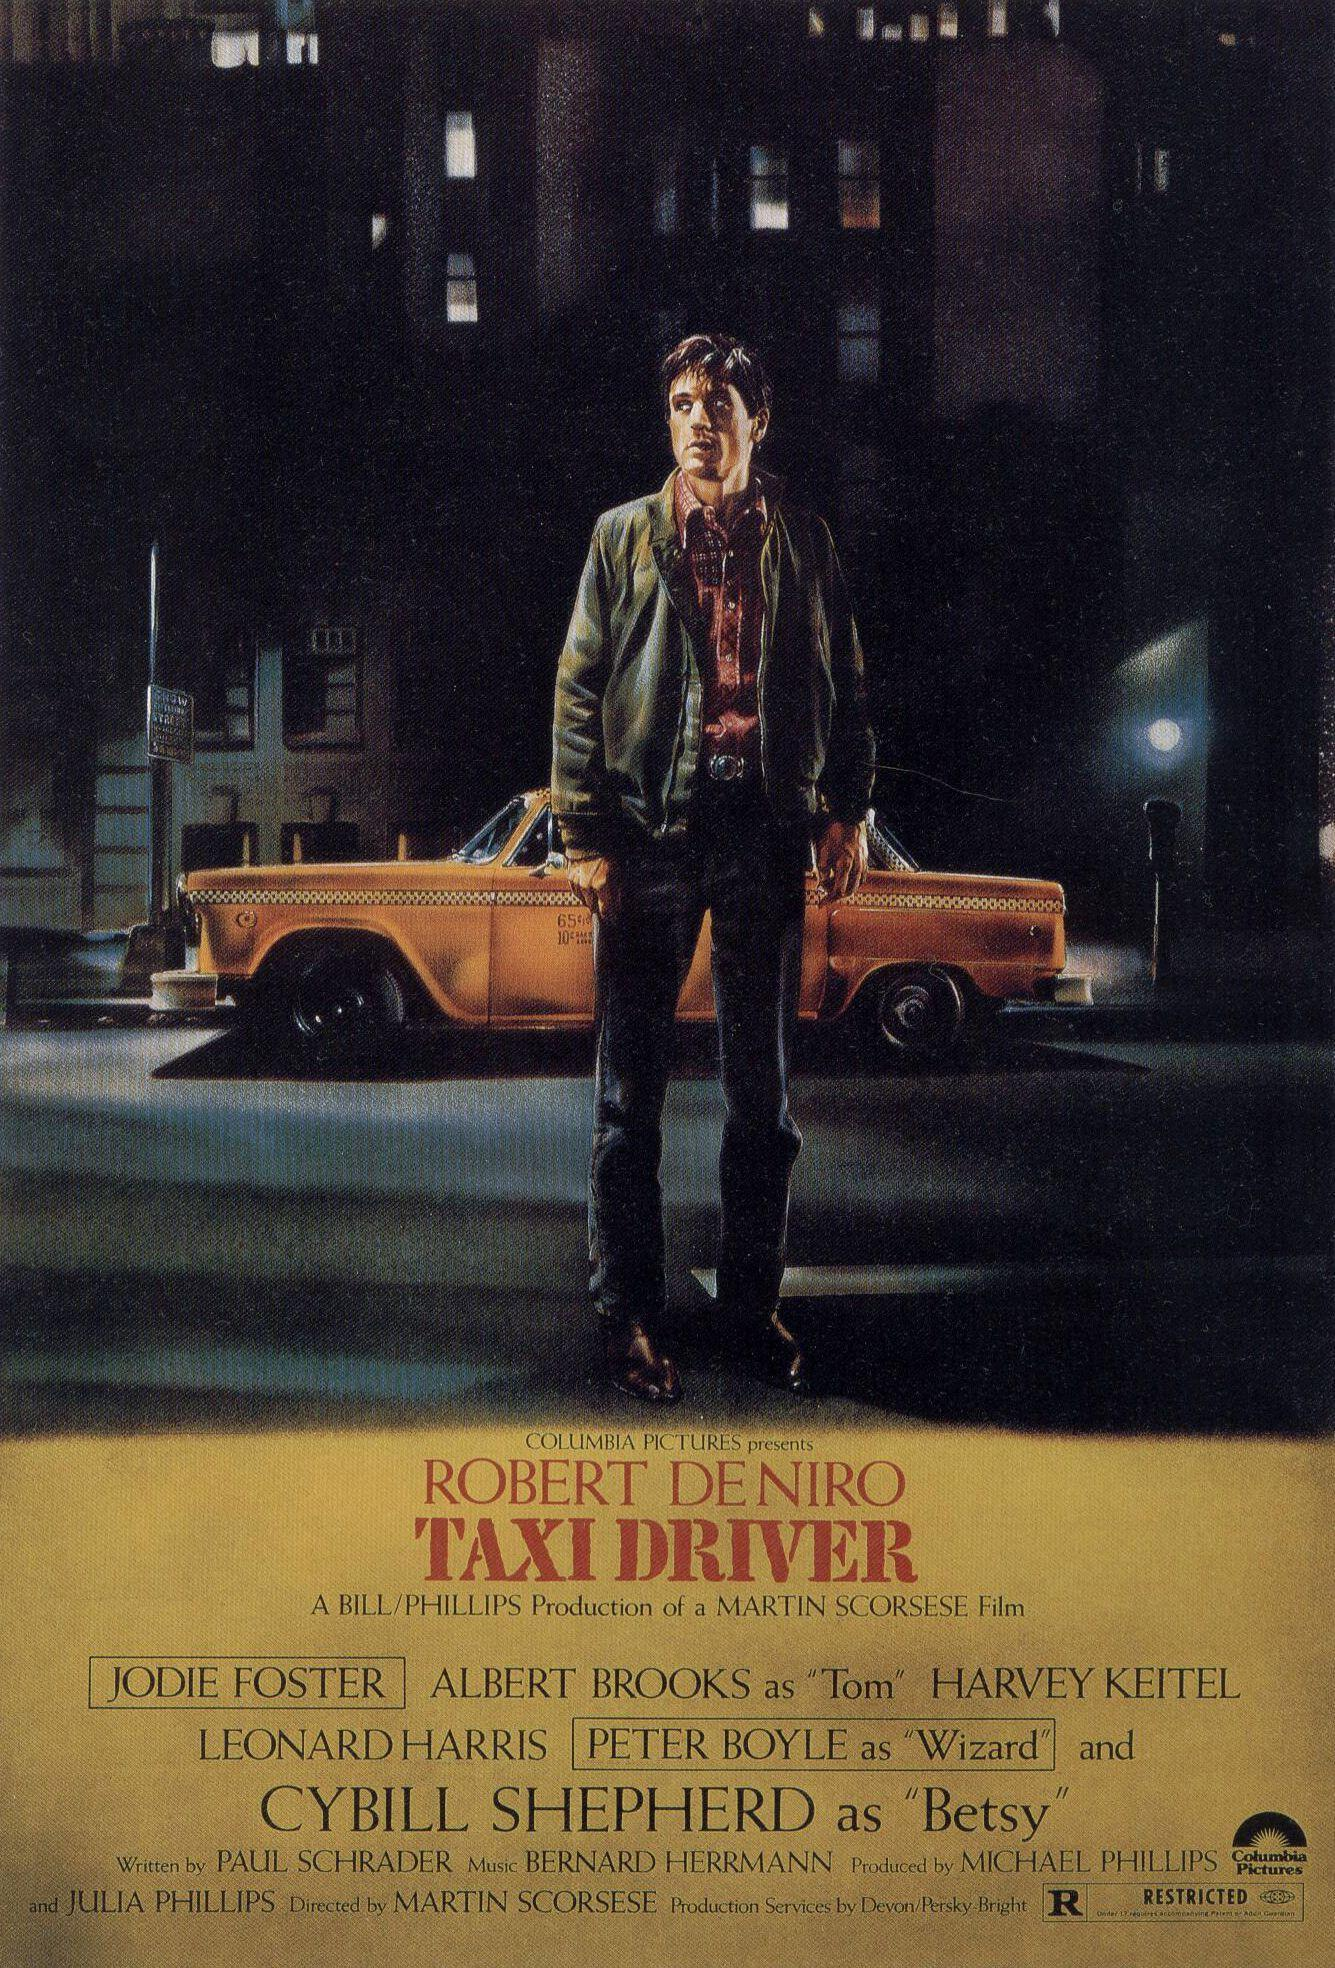 Taxi Driver, Robert De Niro, movie posters :: Wallpapers